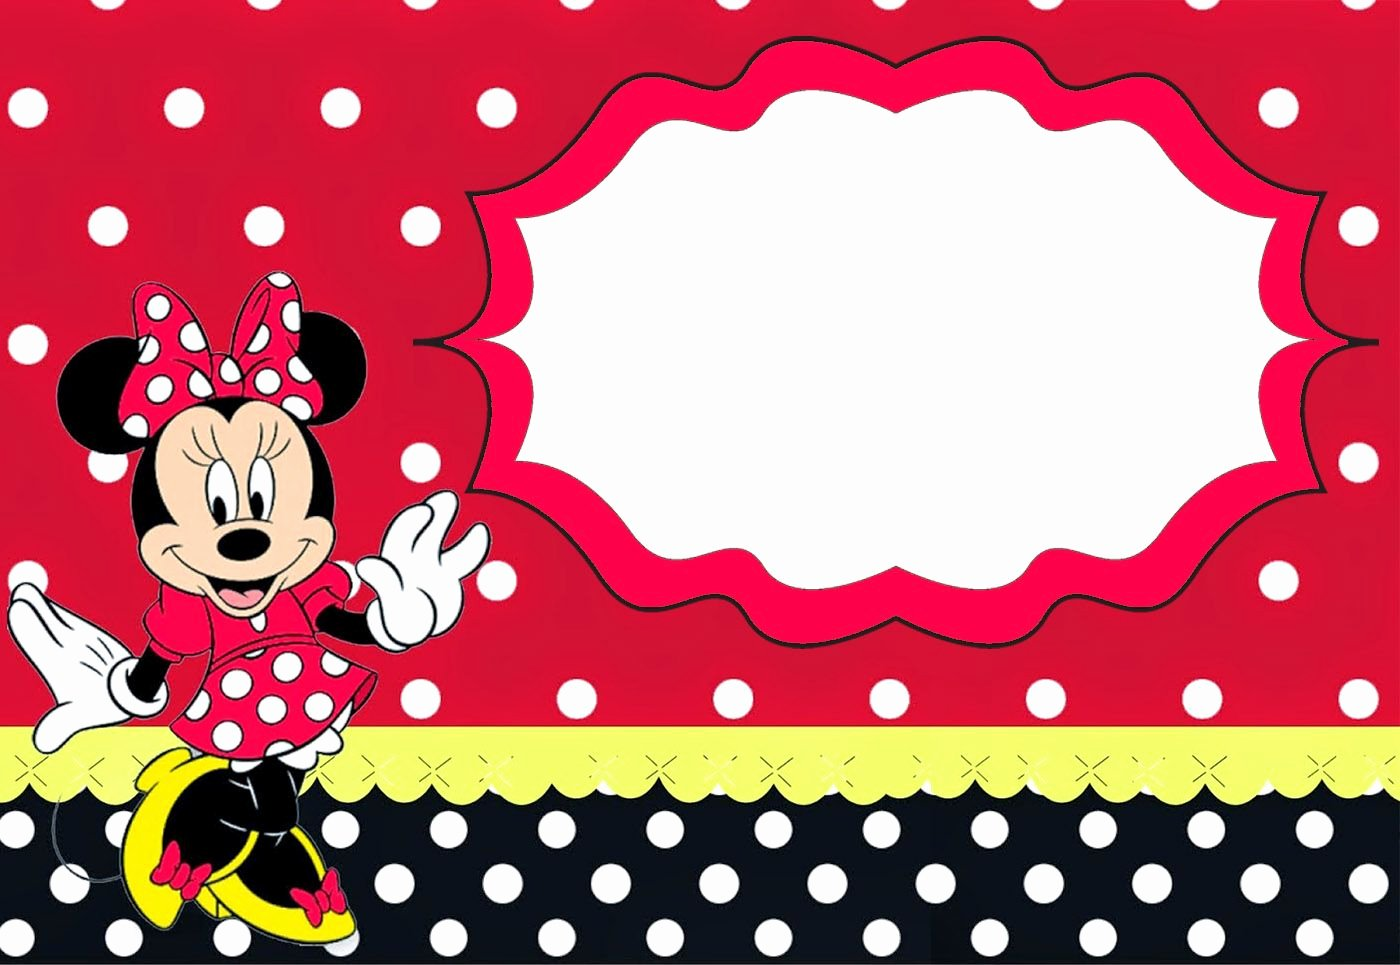 Minnie Mouse Invitation Template Lovely Minnie Mouse Birthday Party Invitation Template